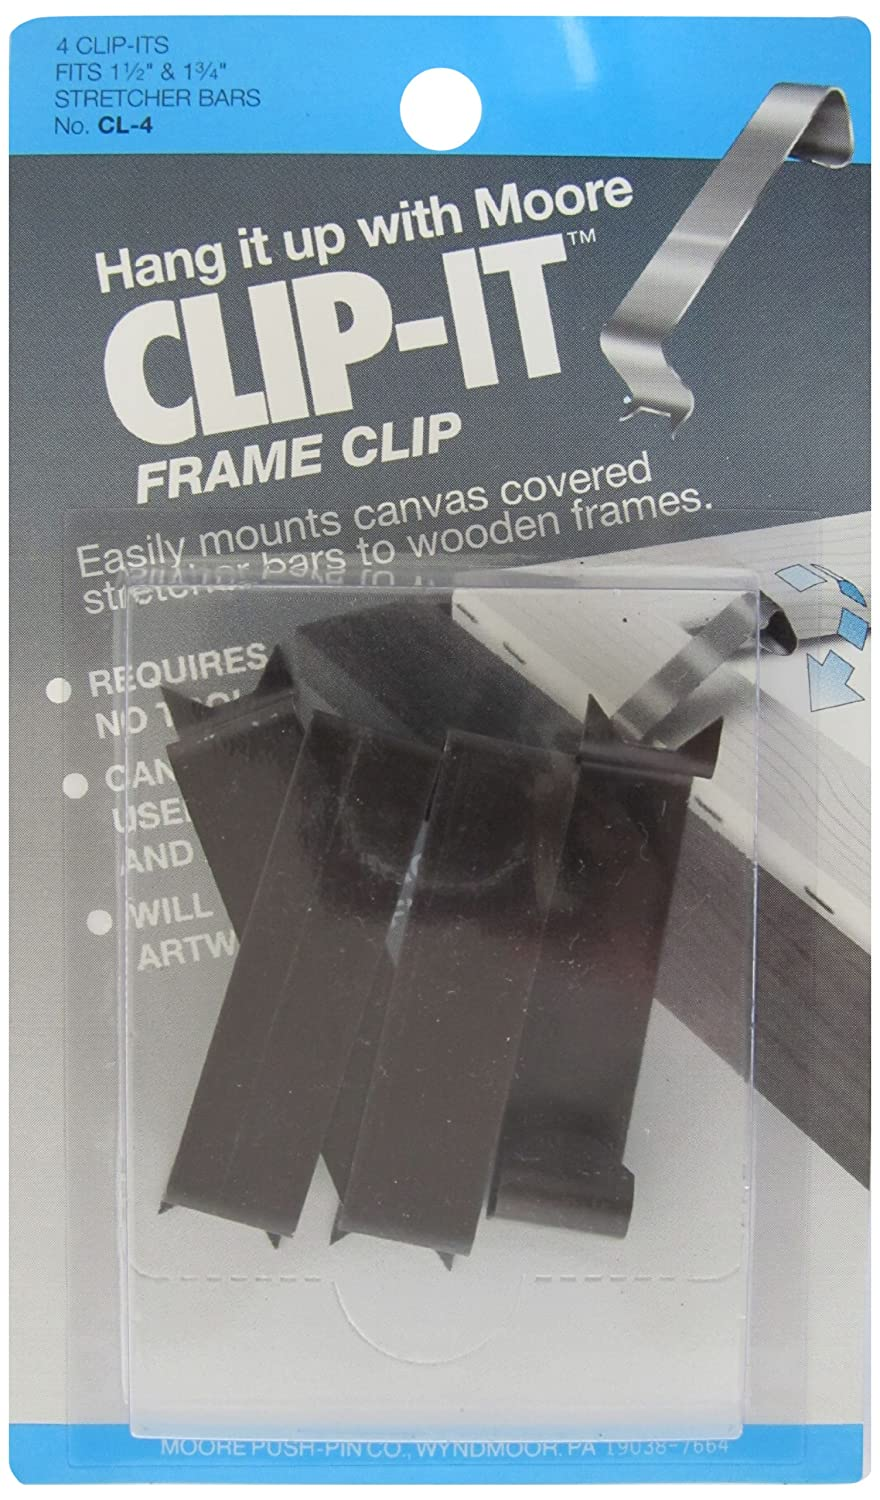 Amazon.com: Moore Push-Pin Clip It Frame Clips, 4 Clips per Pack ...